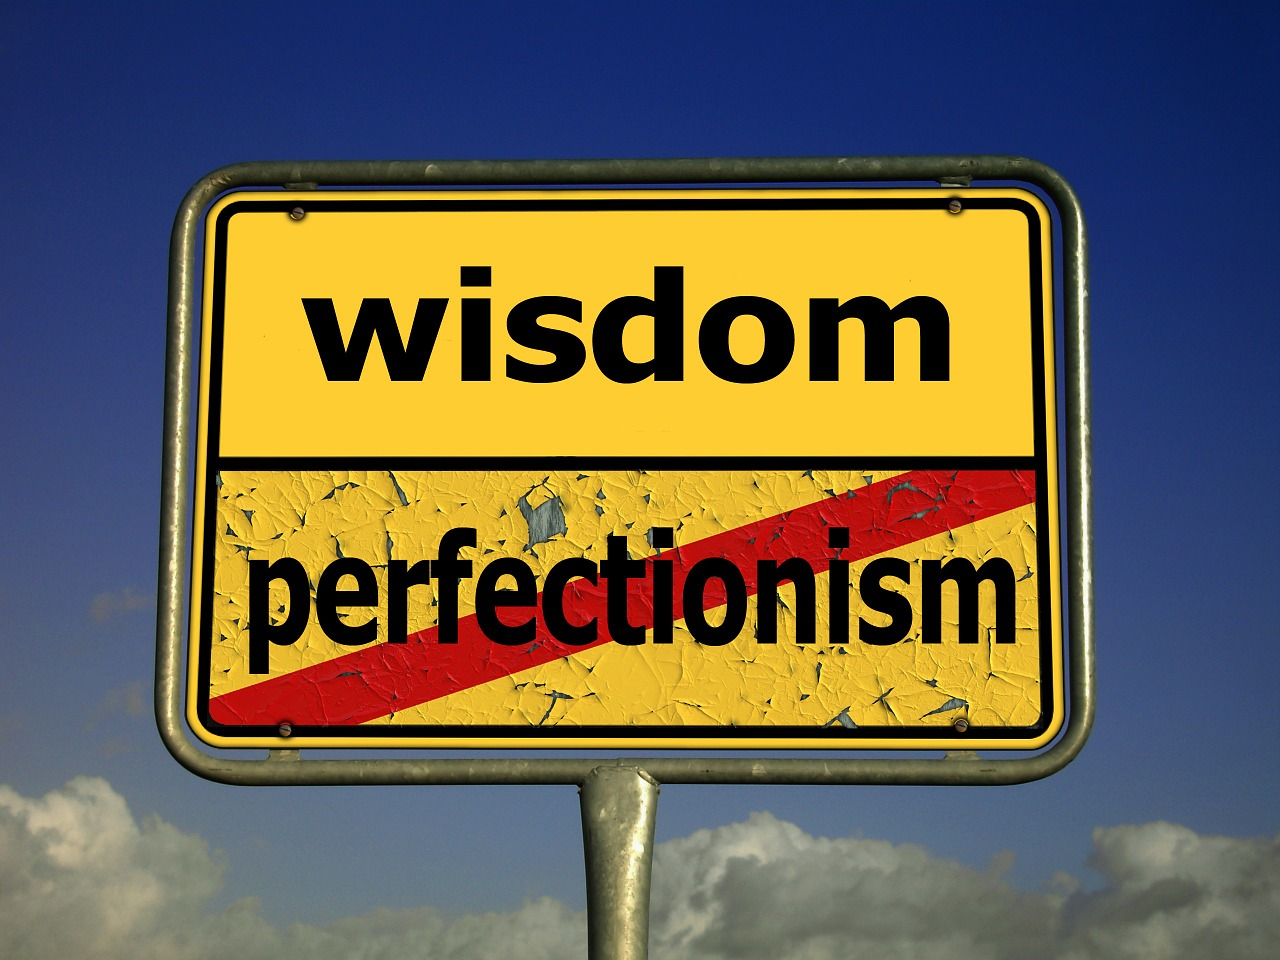 https://i0.wp.com/www.thinknatalia.com/wp-content/uploads/2015/04/The-difference-between-Perfectionism-Excellence-Natalia-Wiechowskis-blog.jpg